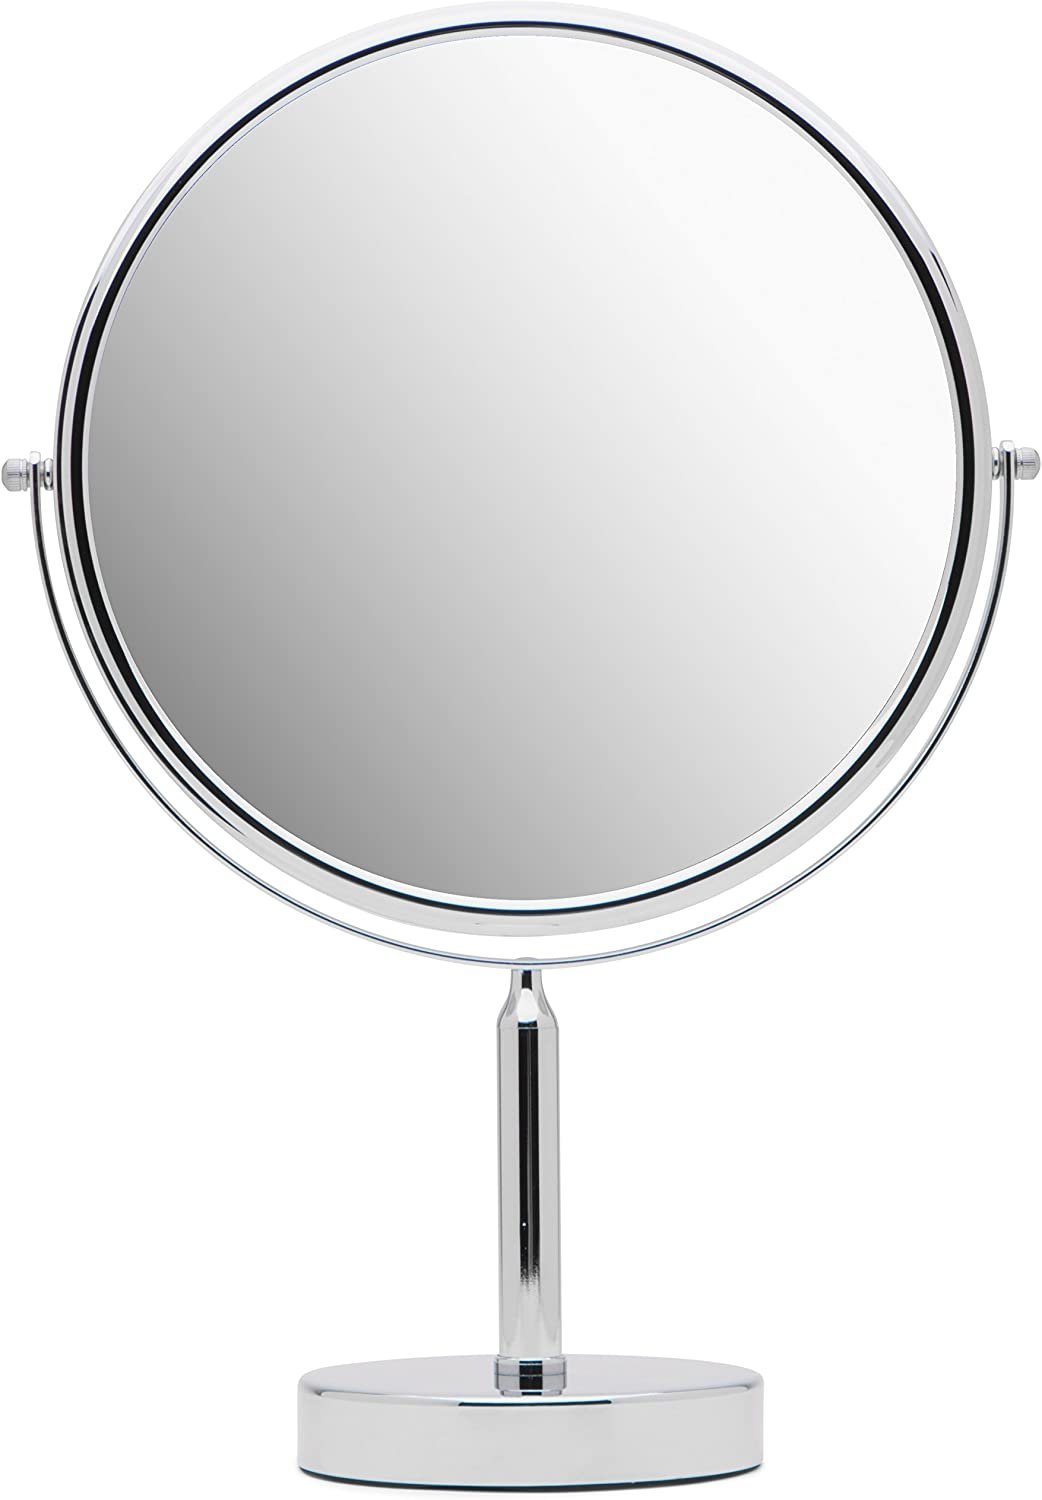 """Mirrorvana XXLarge 11-Inch Oversized Magnifying Makeup Mirror with Stand, Double Sided 3x/1x Magnification, 17"""" Height"""